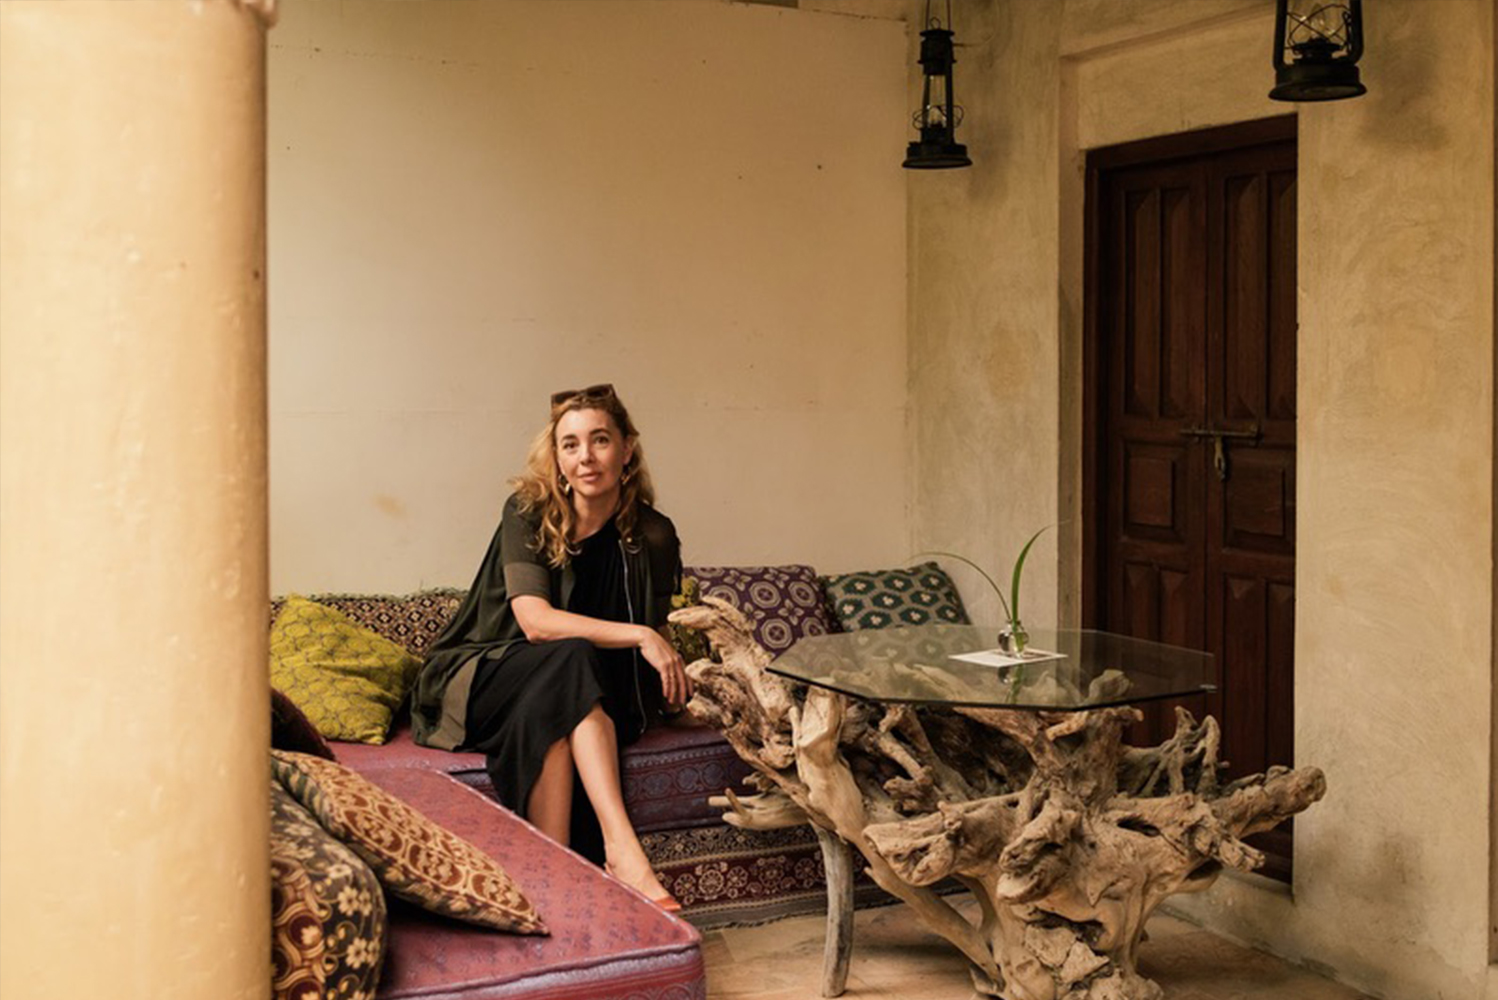 The Dubai office moved to the Dubai Design District, and is led by managing director Isabel Pintado.